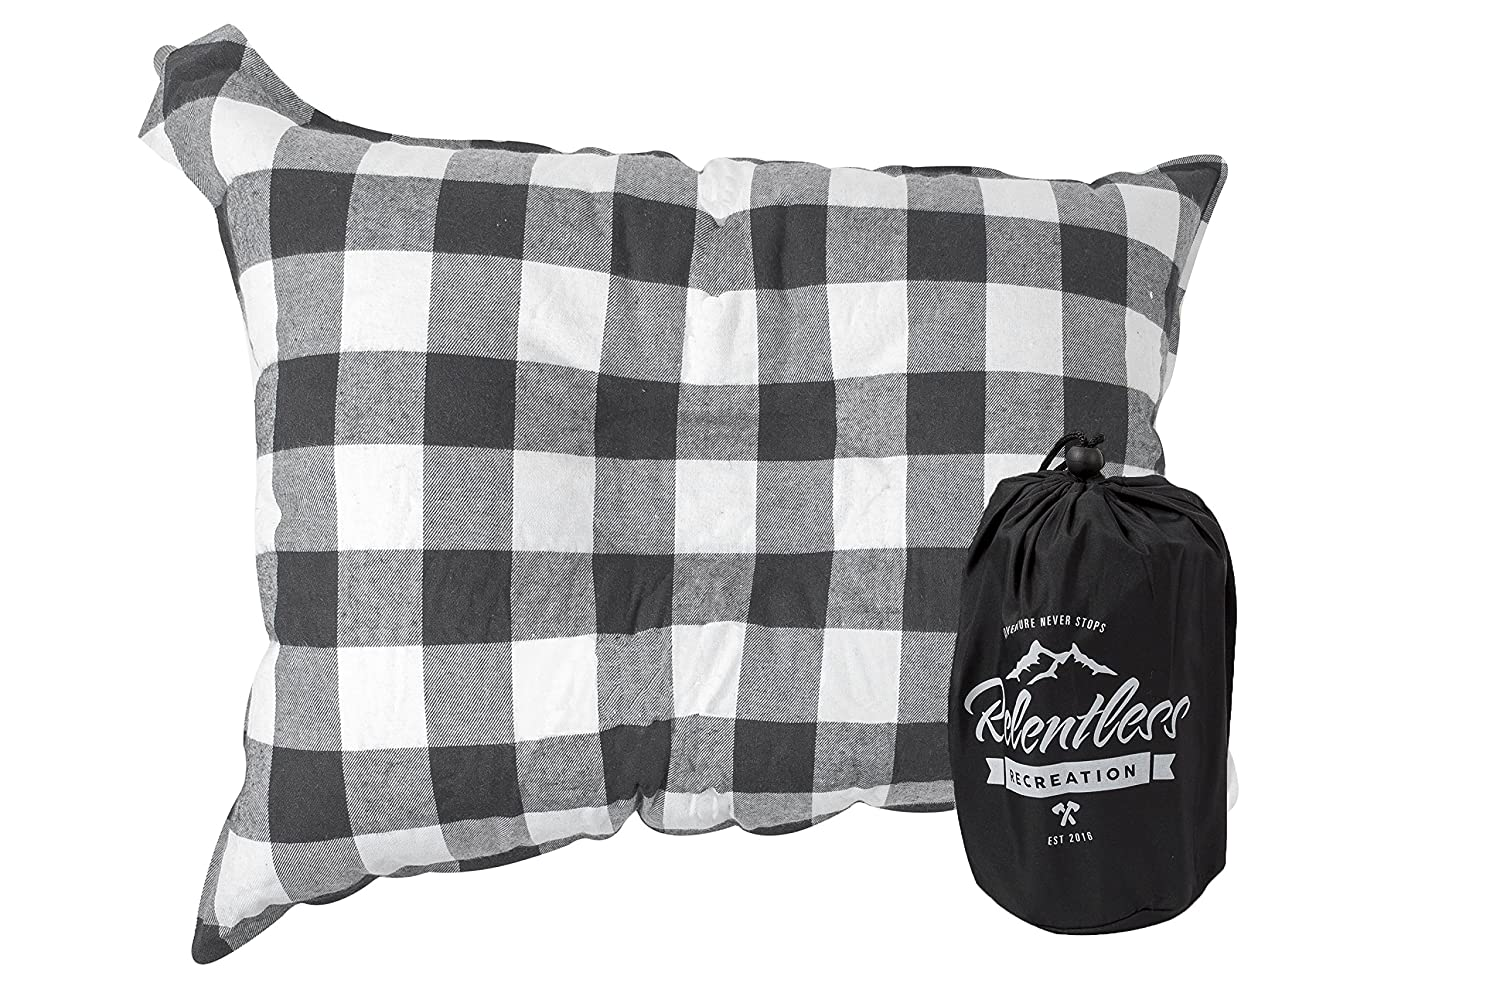 Relentless Recreation Big /& Cozy Camp Pillow The Big Ezzz Extra Large 20 in Inflatable Travel//Camping Pillow with Soft Microfiber Flannel by 14 in